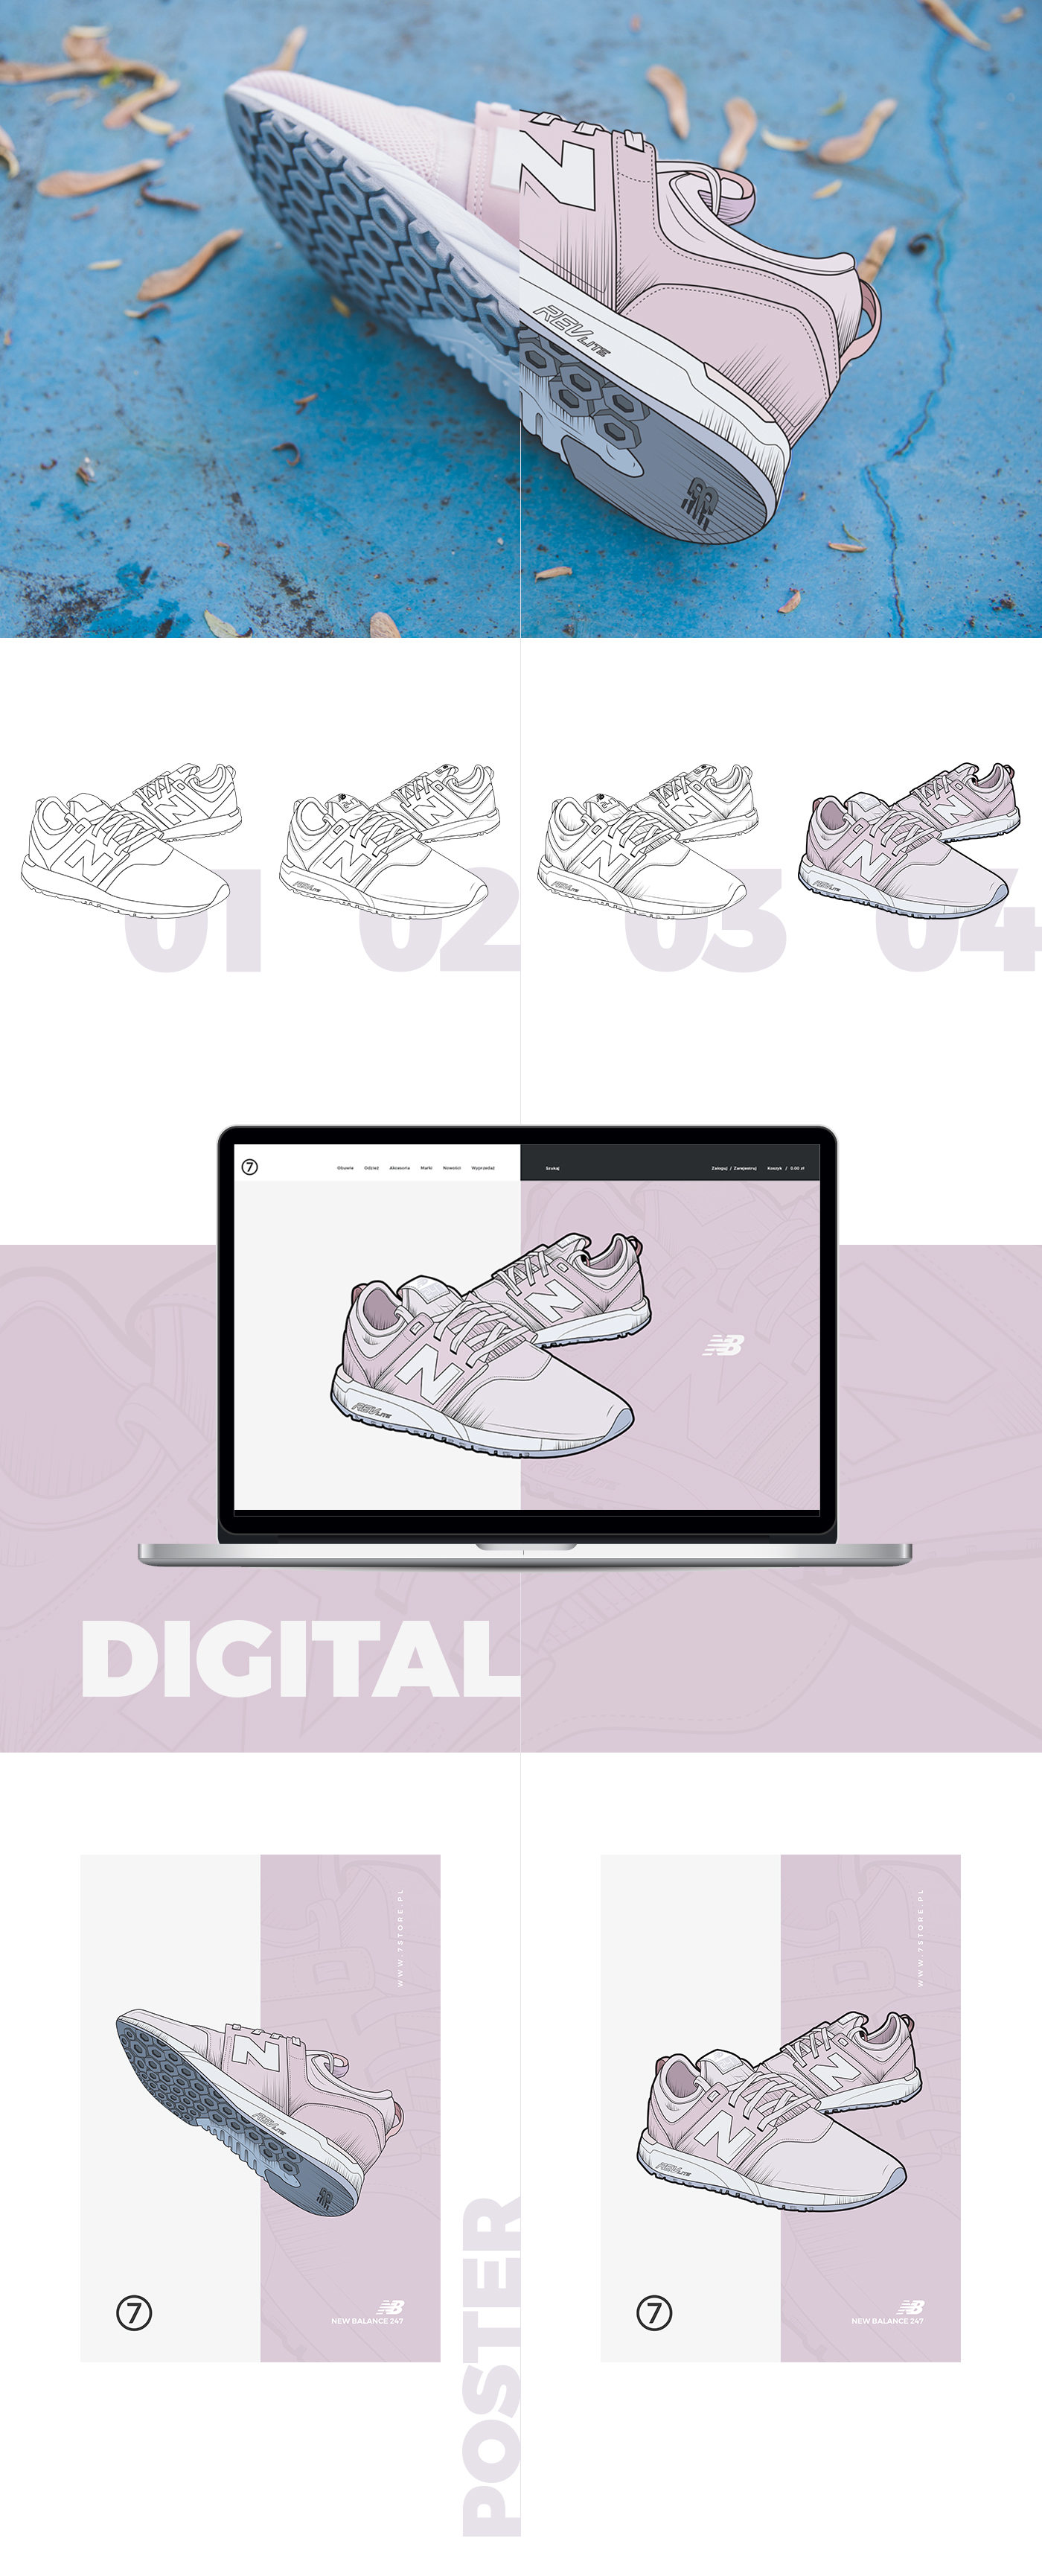 sneakers New Balance shoes poster digital